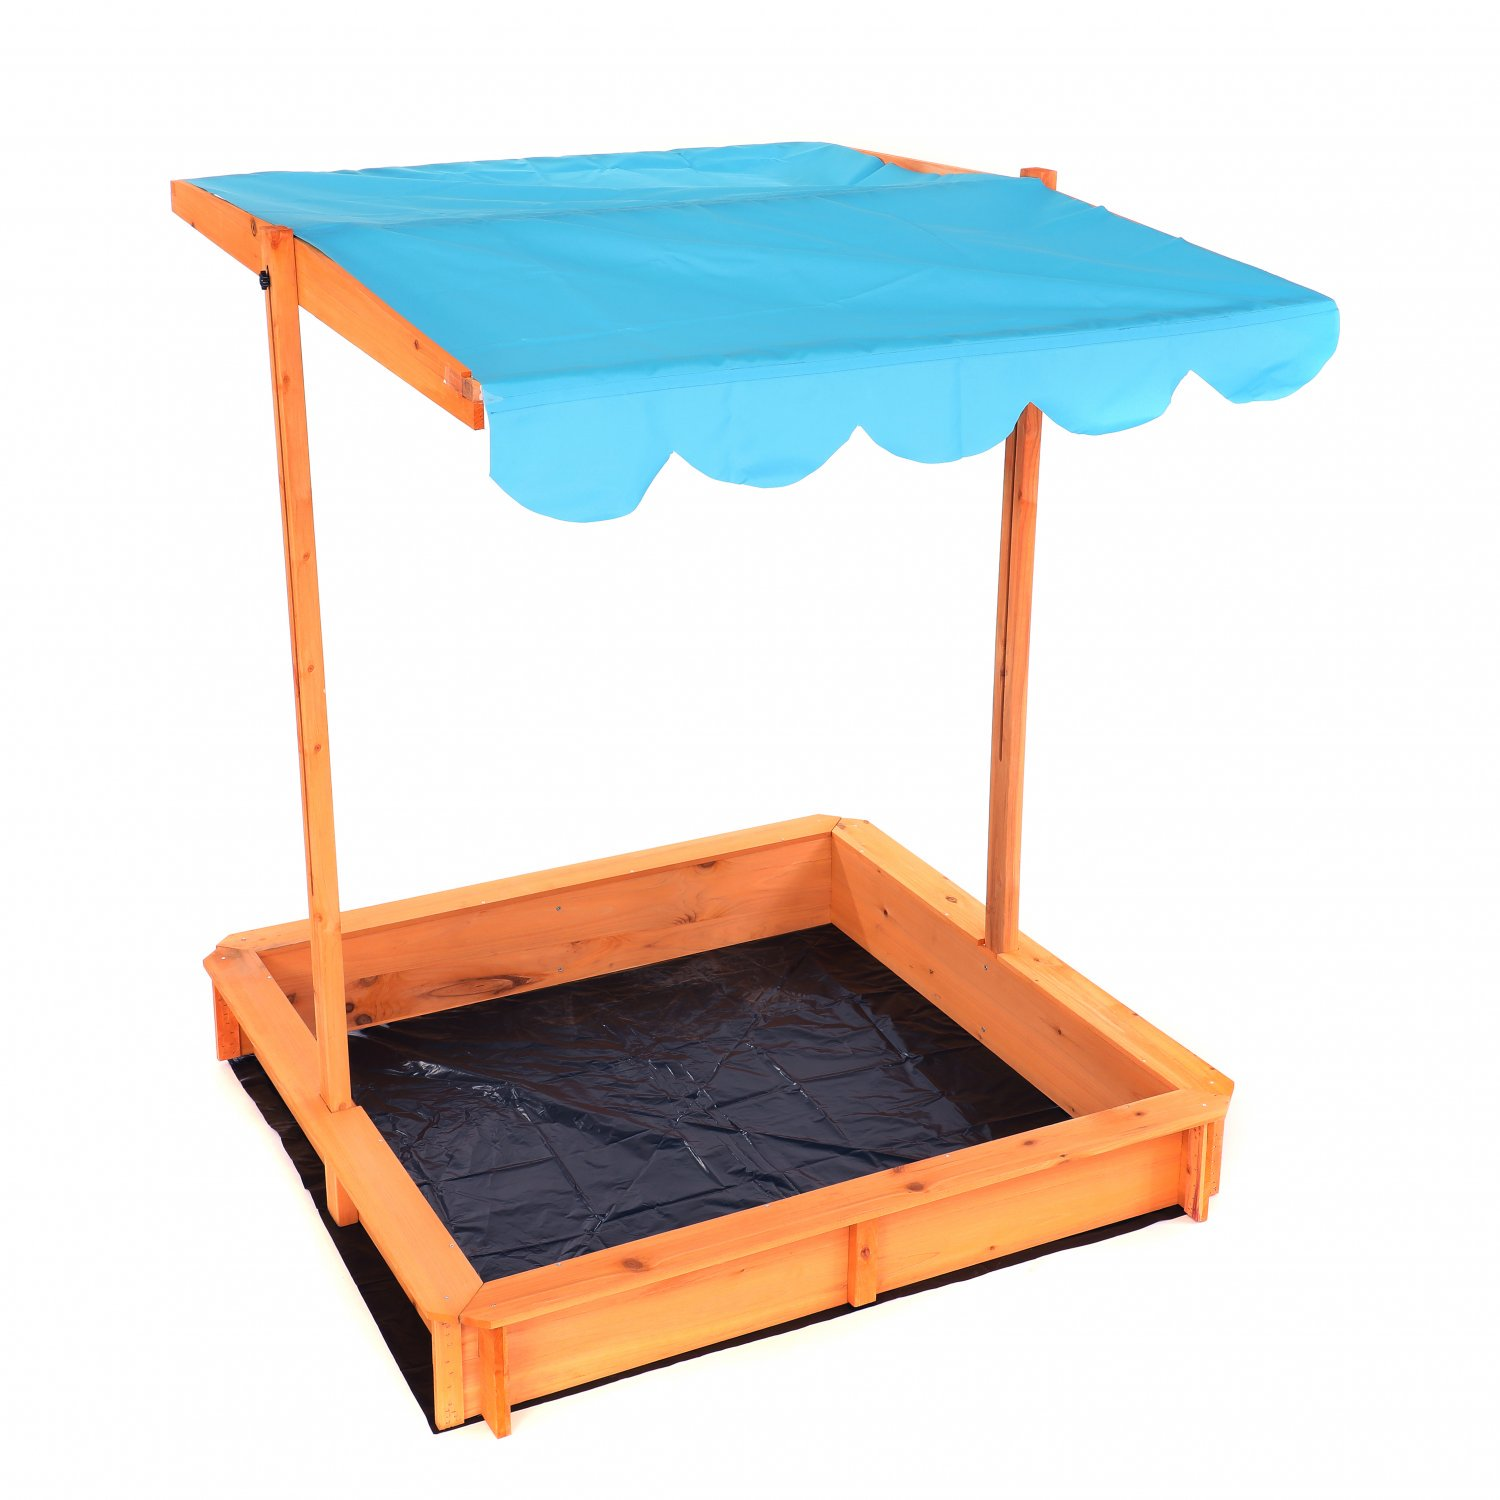 Childrens Wooden Garden Sand Pit with Adjustable Canopy